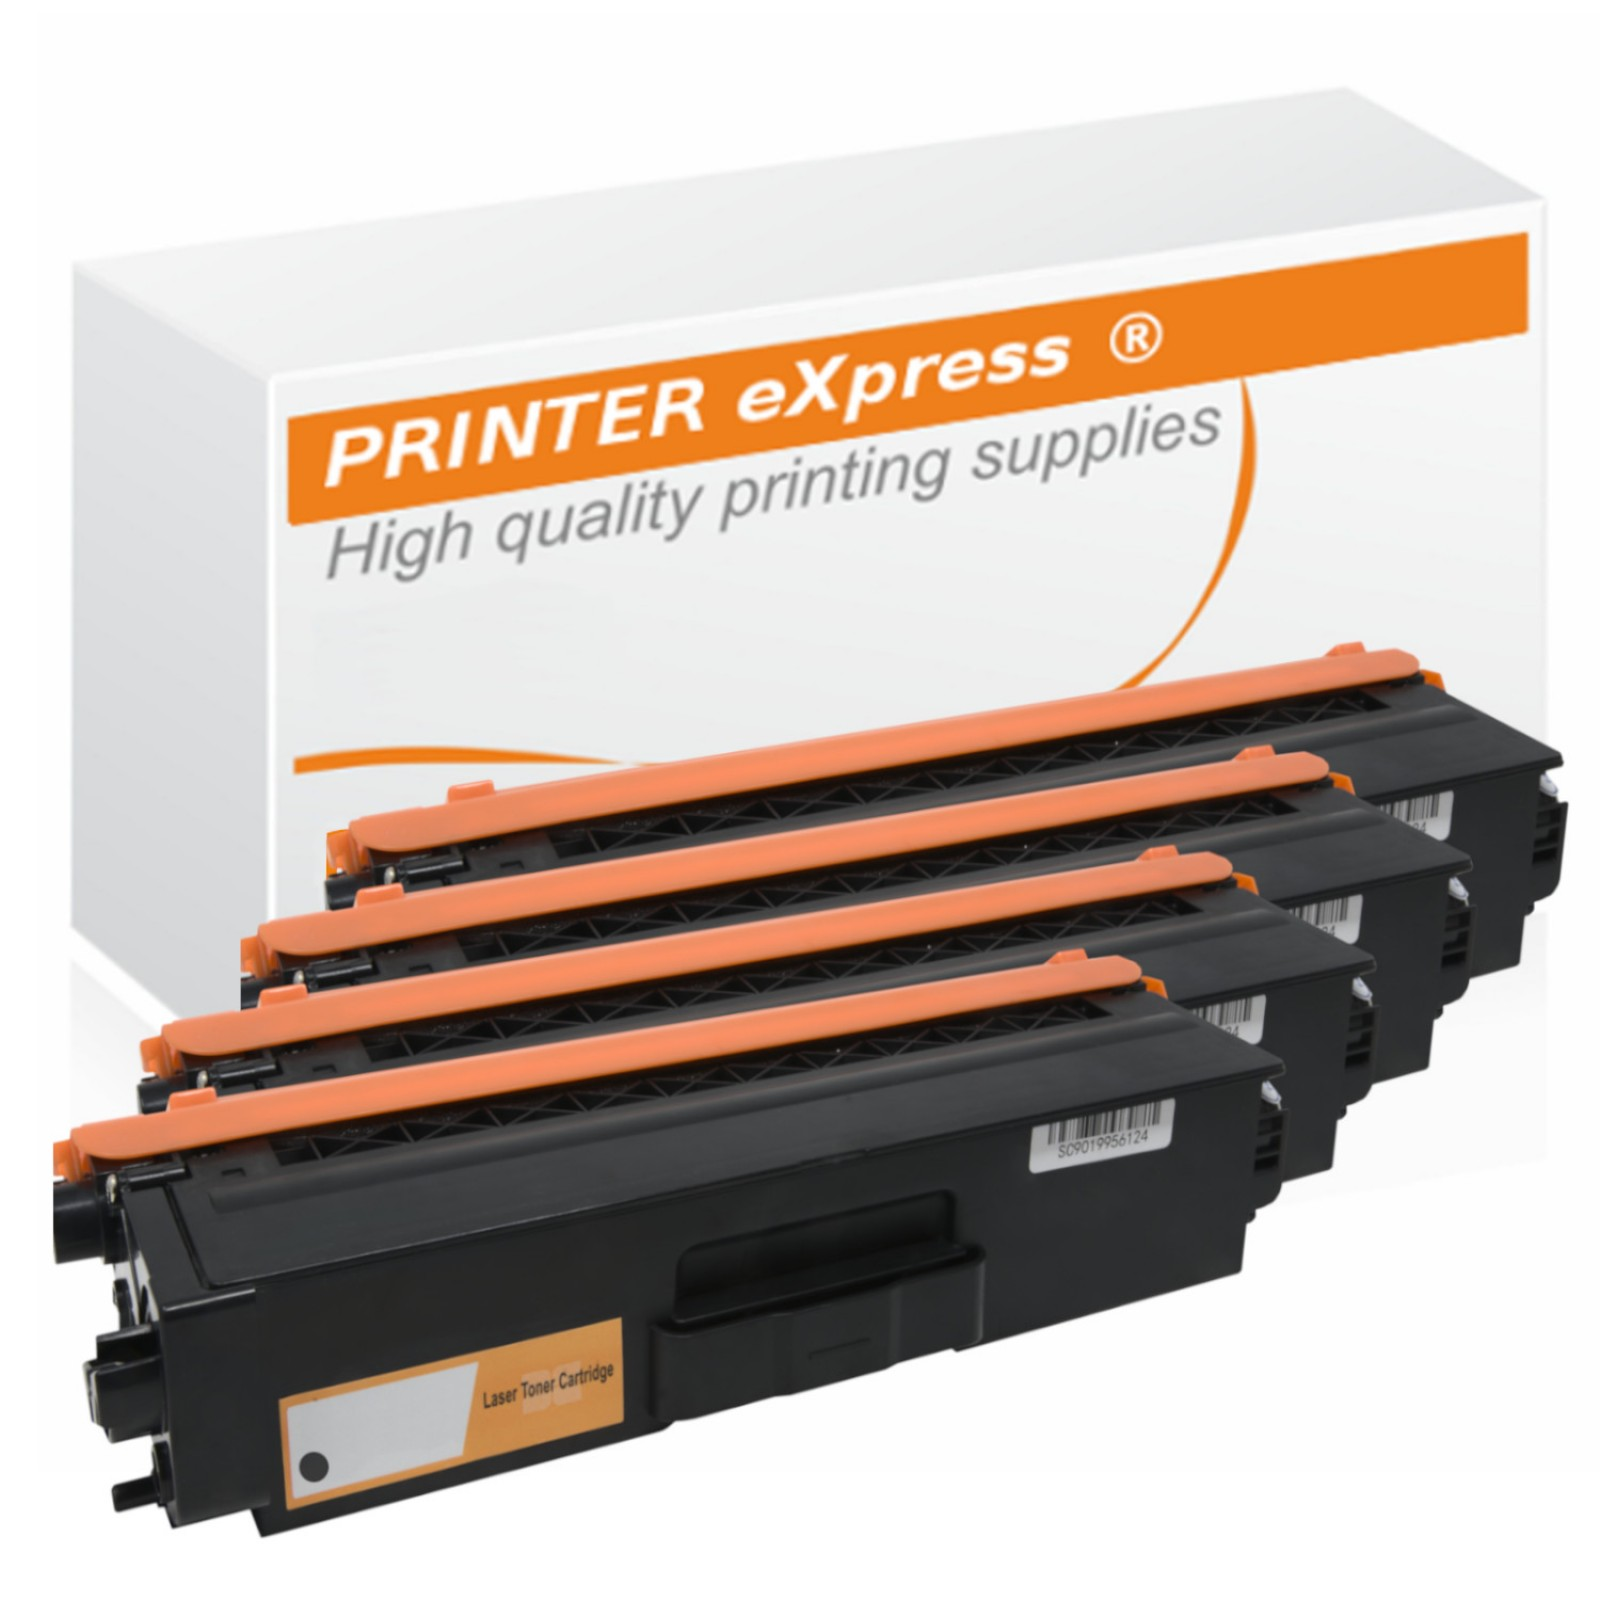 Toner Multipack alternativ zu Brother TN-320 4 Tonerkartuschen für Brother Drucker